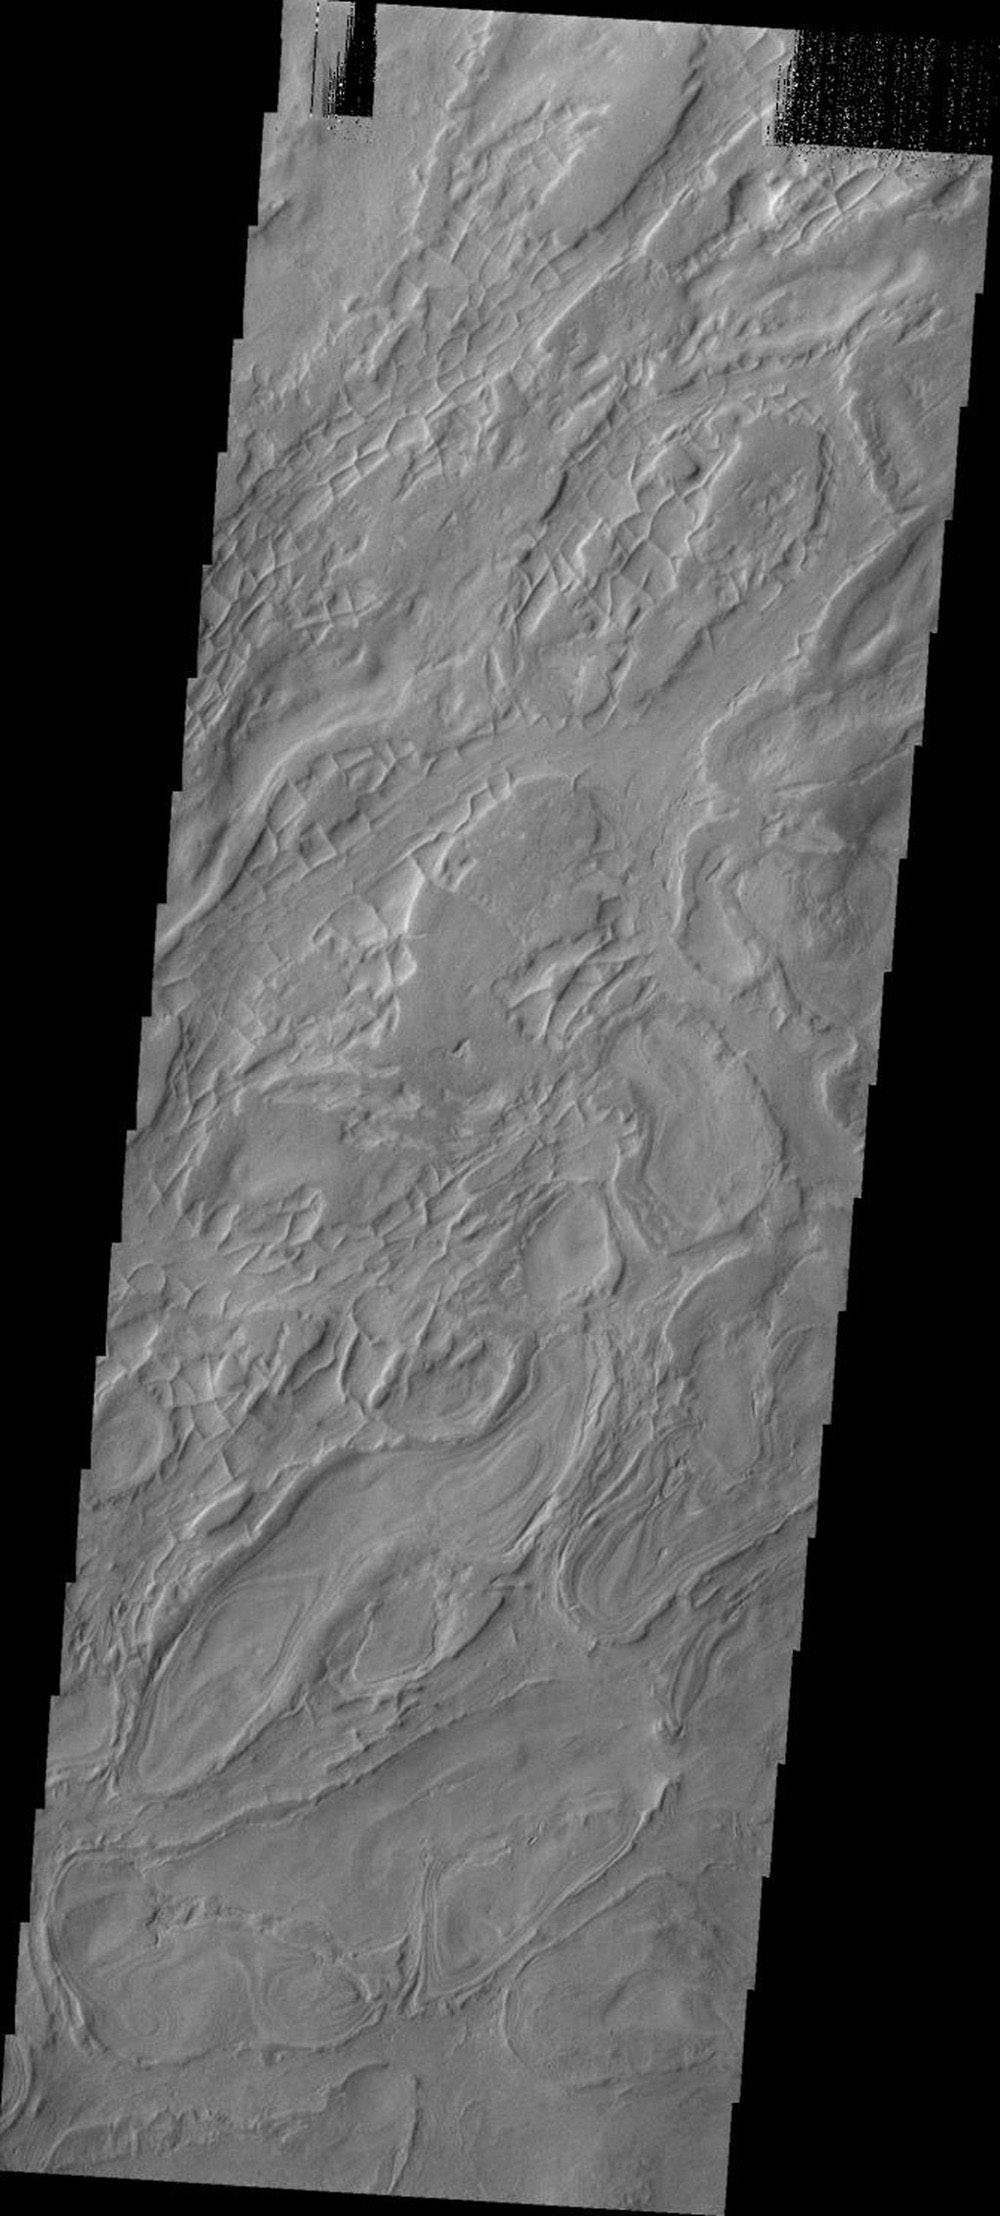 This image from NASA's Mars Odyssey shows a small portion of the western floor of Hellas Basin on Mars. The curved, broad ridges are separated by lower elevations filled with smaller, linear ridges.